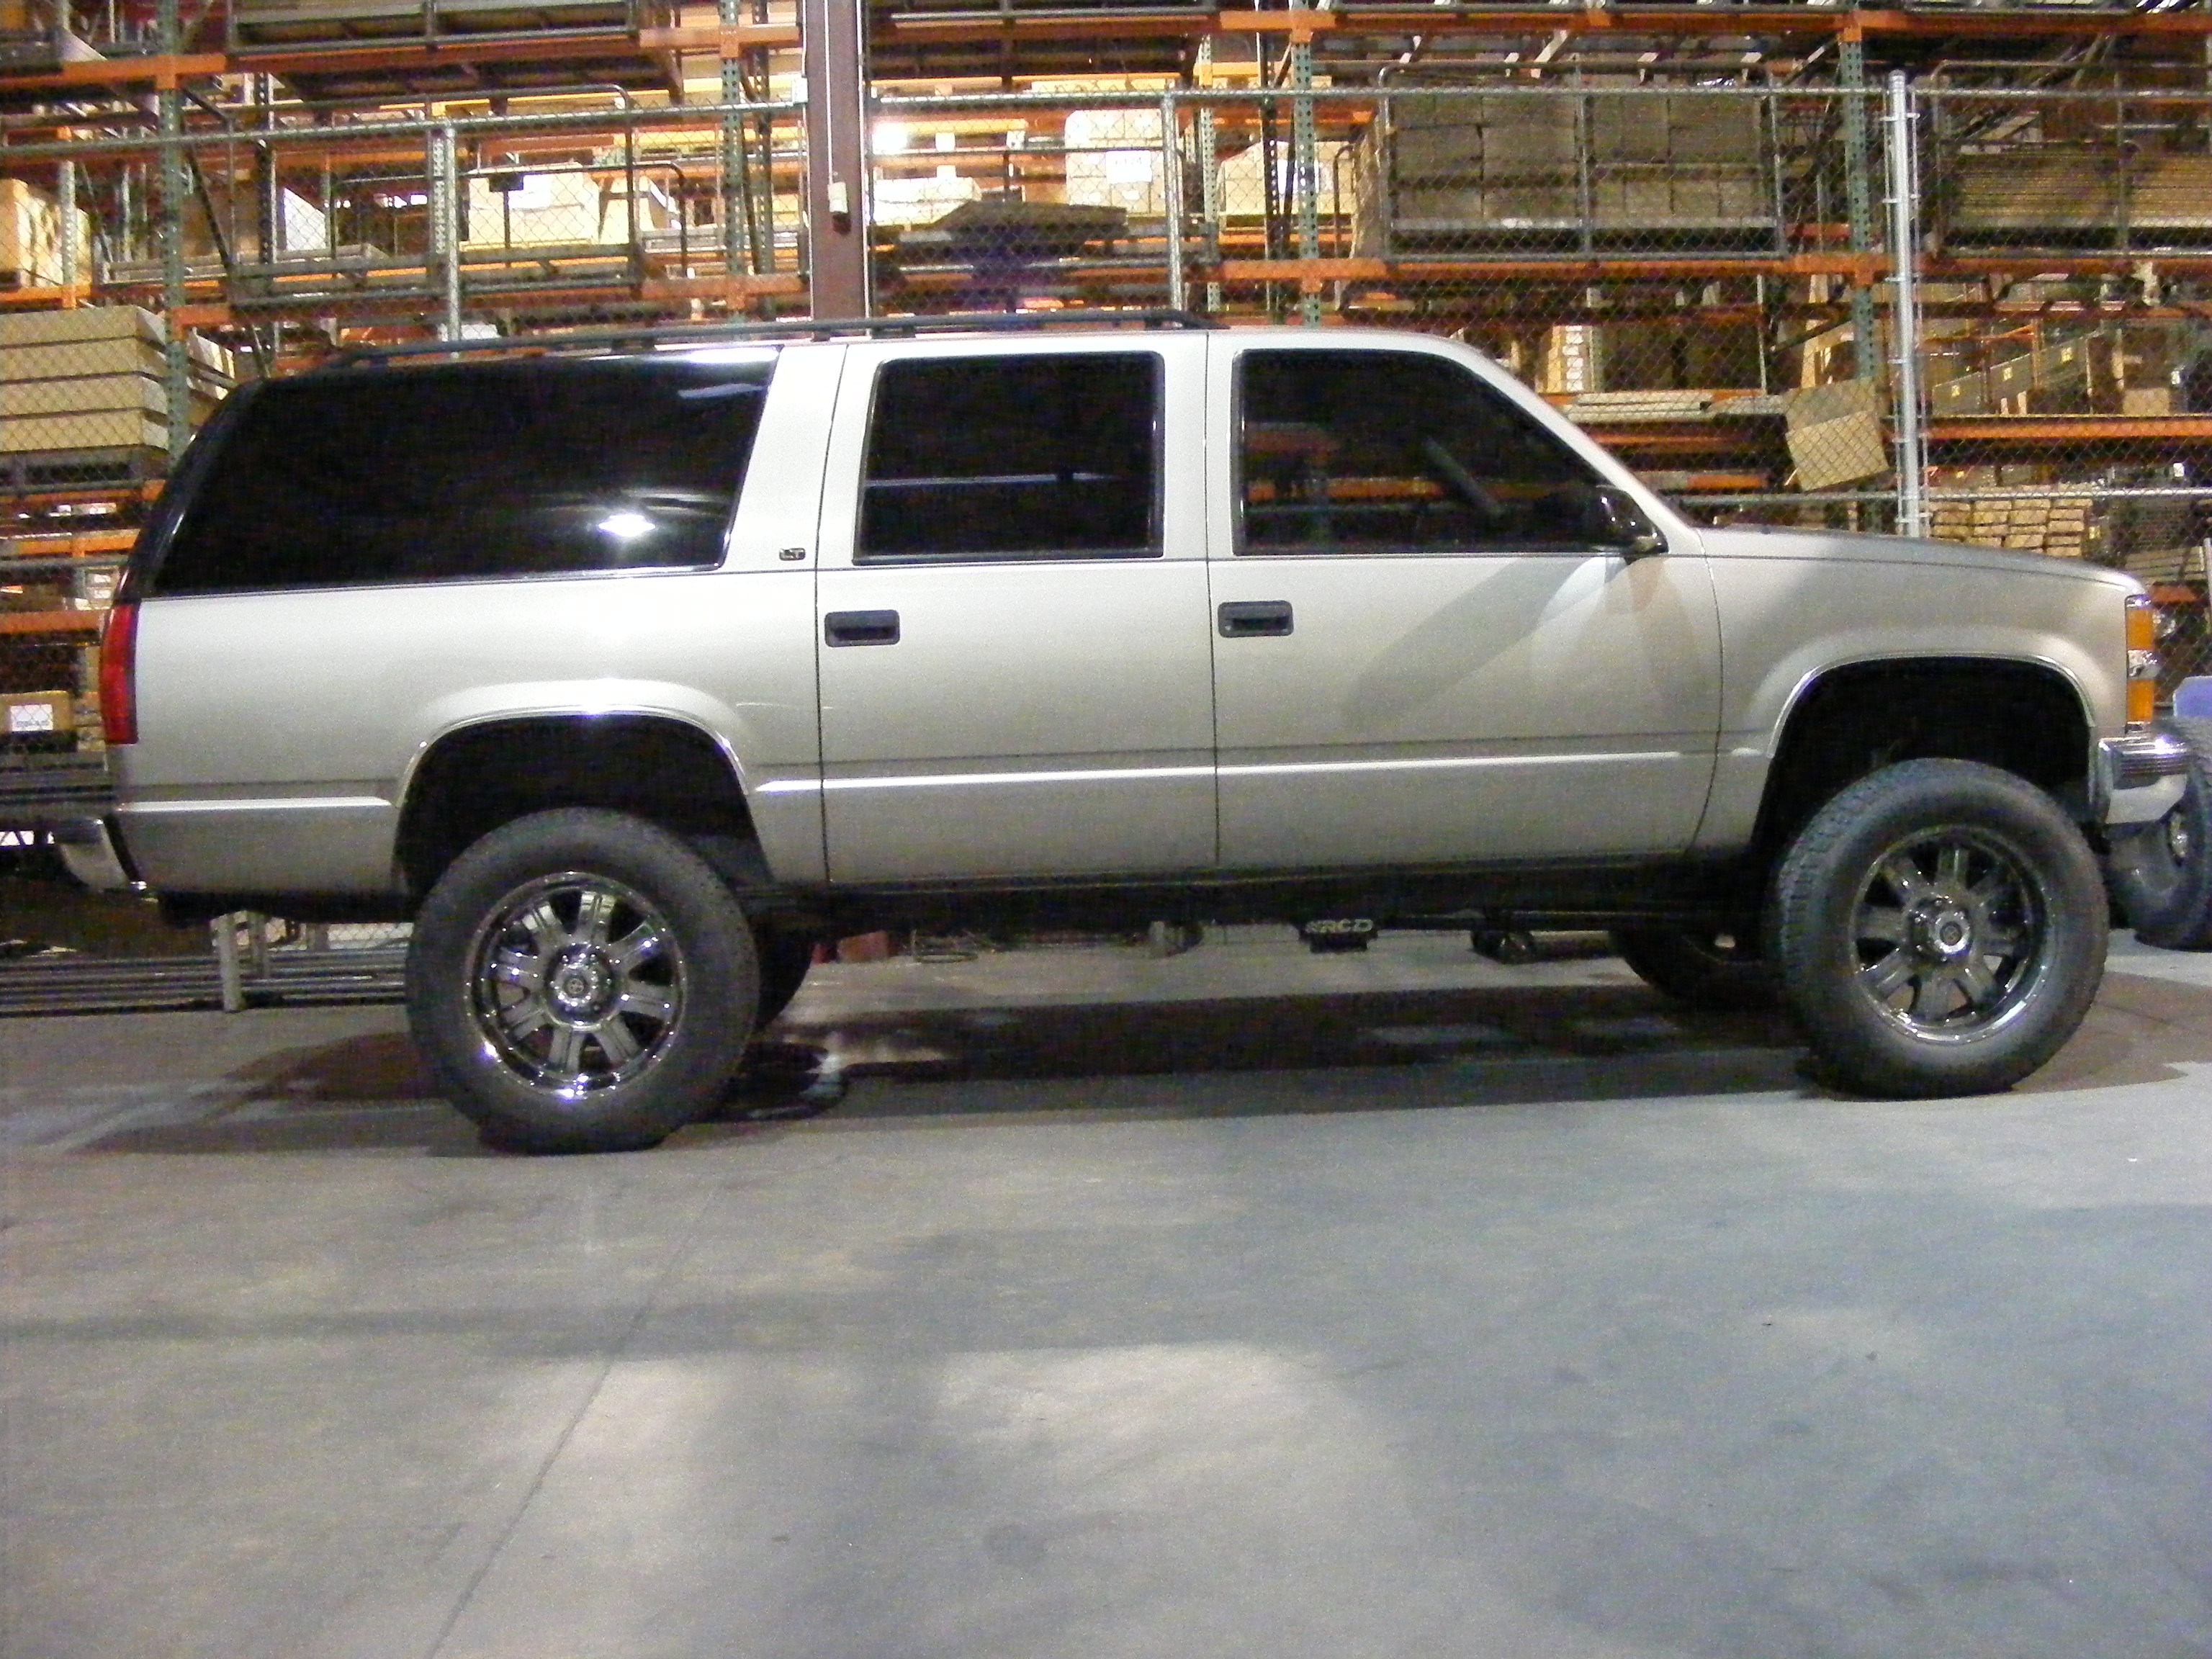 4x4xtsy 1999 chevrolet suburban 1500 specs photos modification info at cardomain. Black Bedroom Furniture Sets. Home Design Ideas